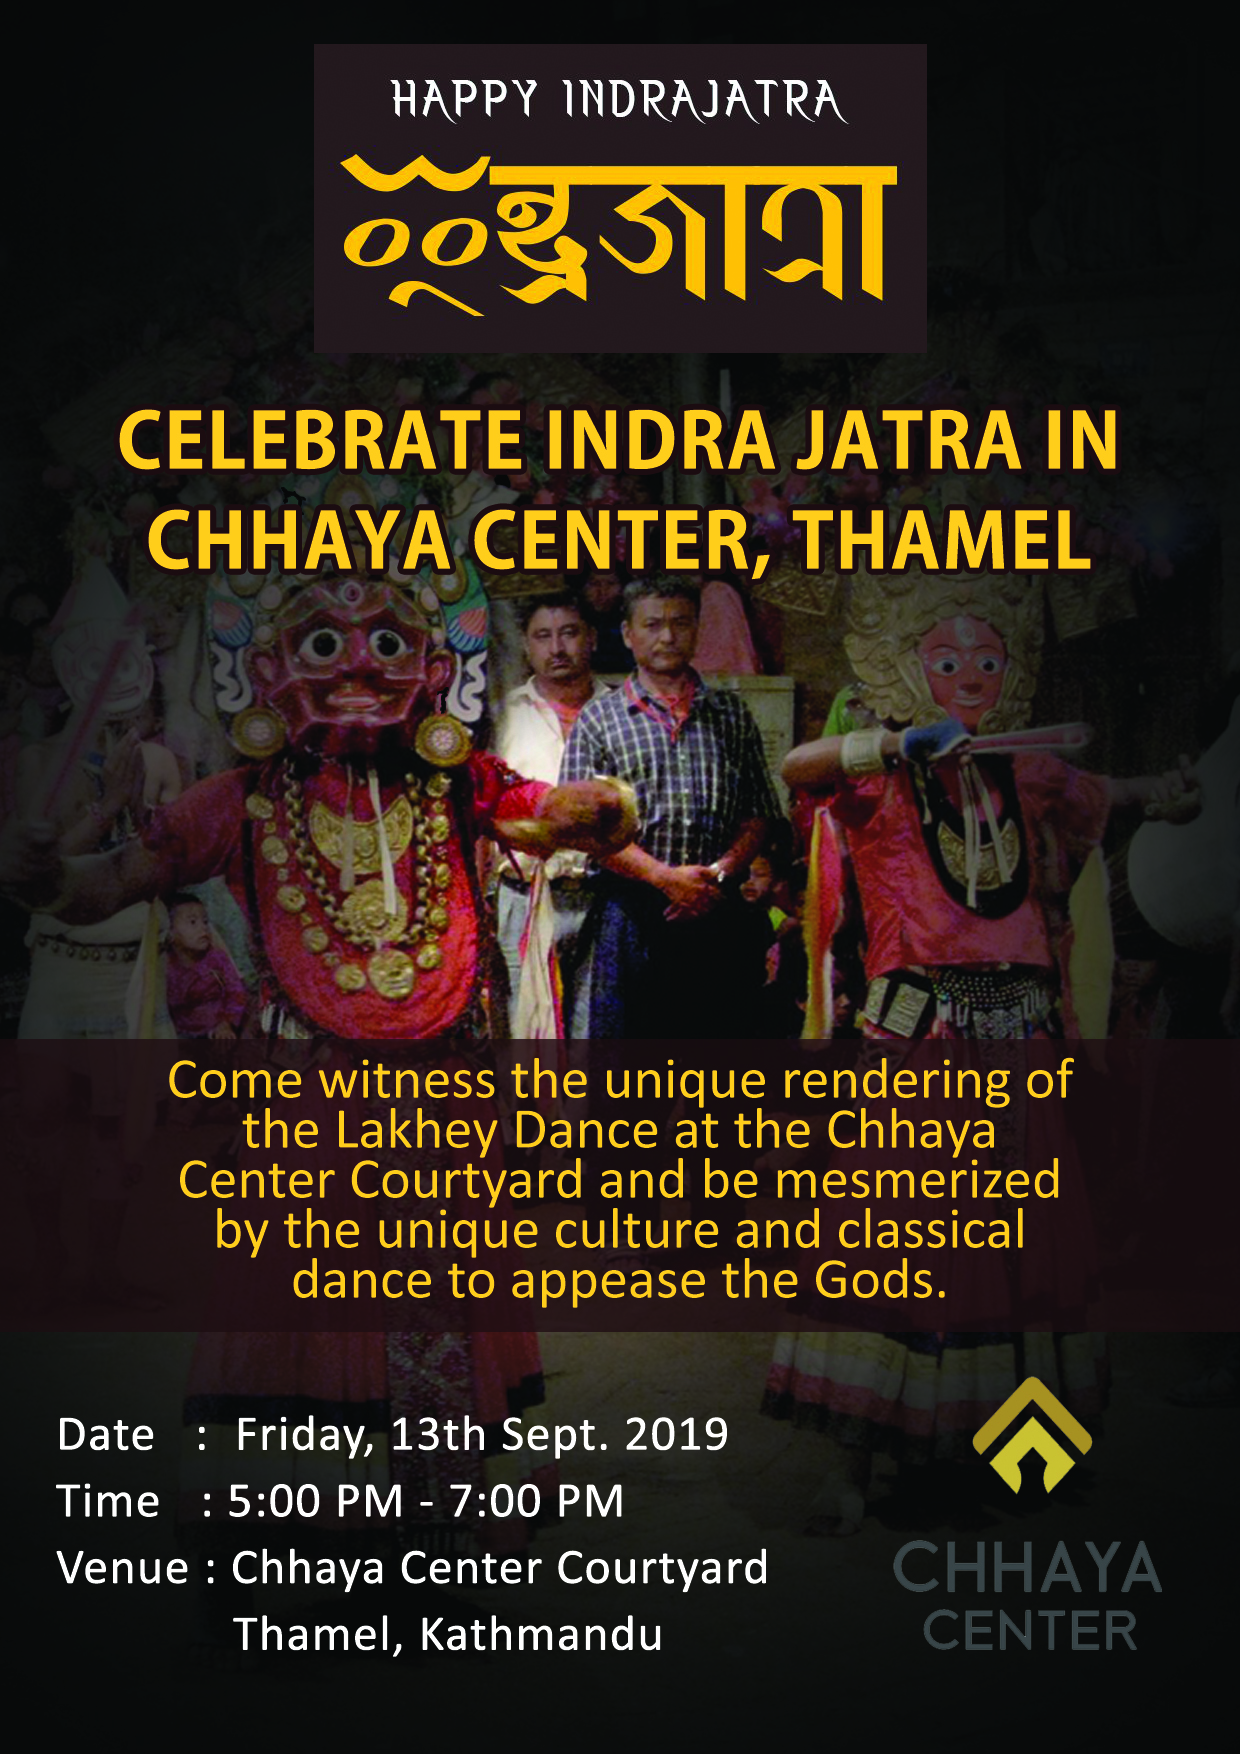 Celebrate Indra Jatra in Chhaya Center, Thamel